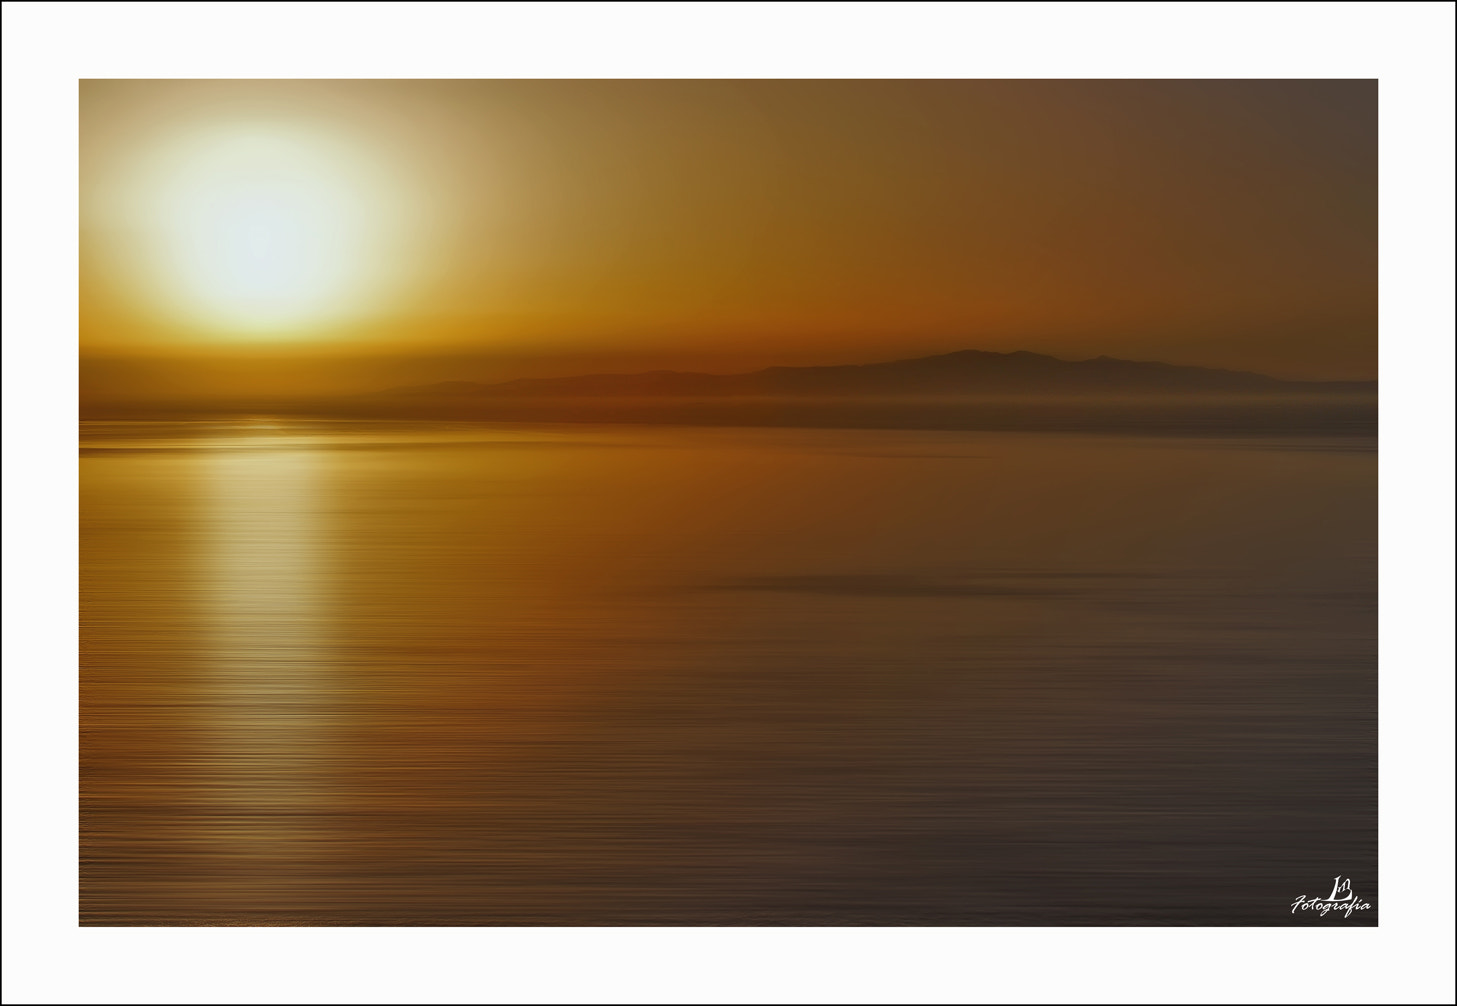 Photograph A golden dream by Manuel Lancha on 500px